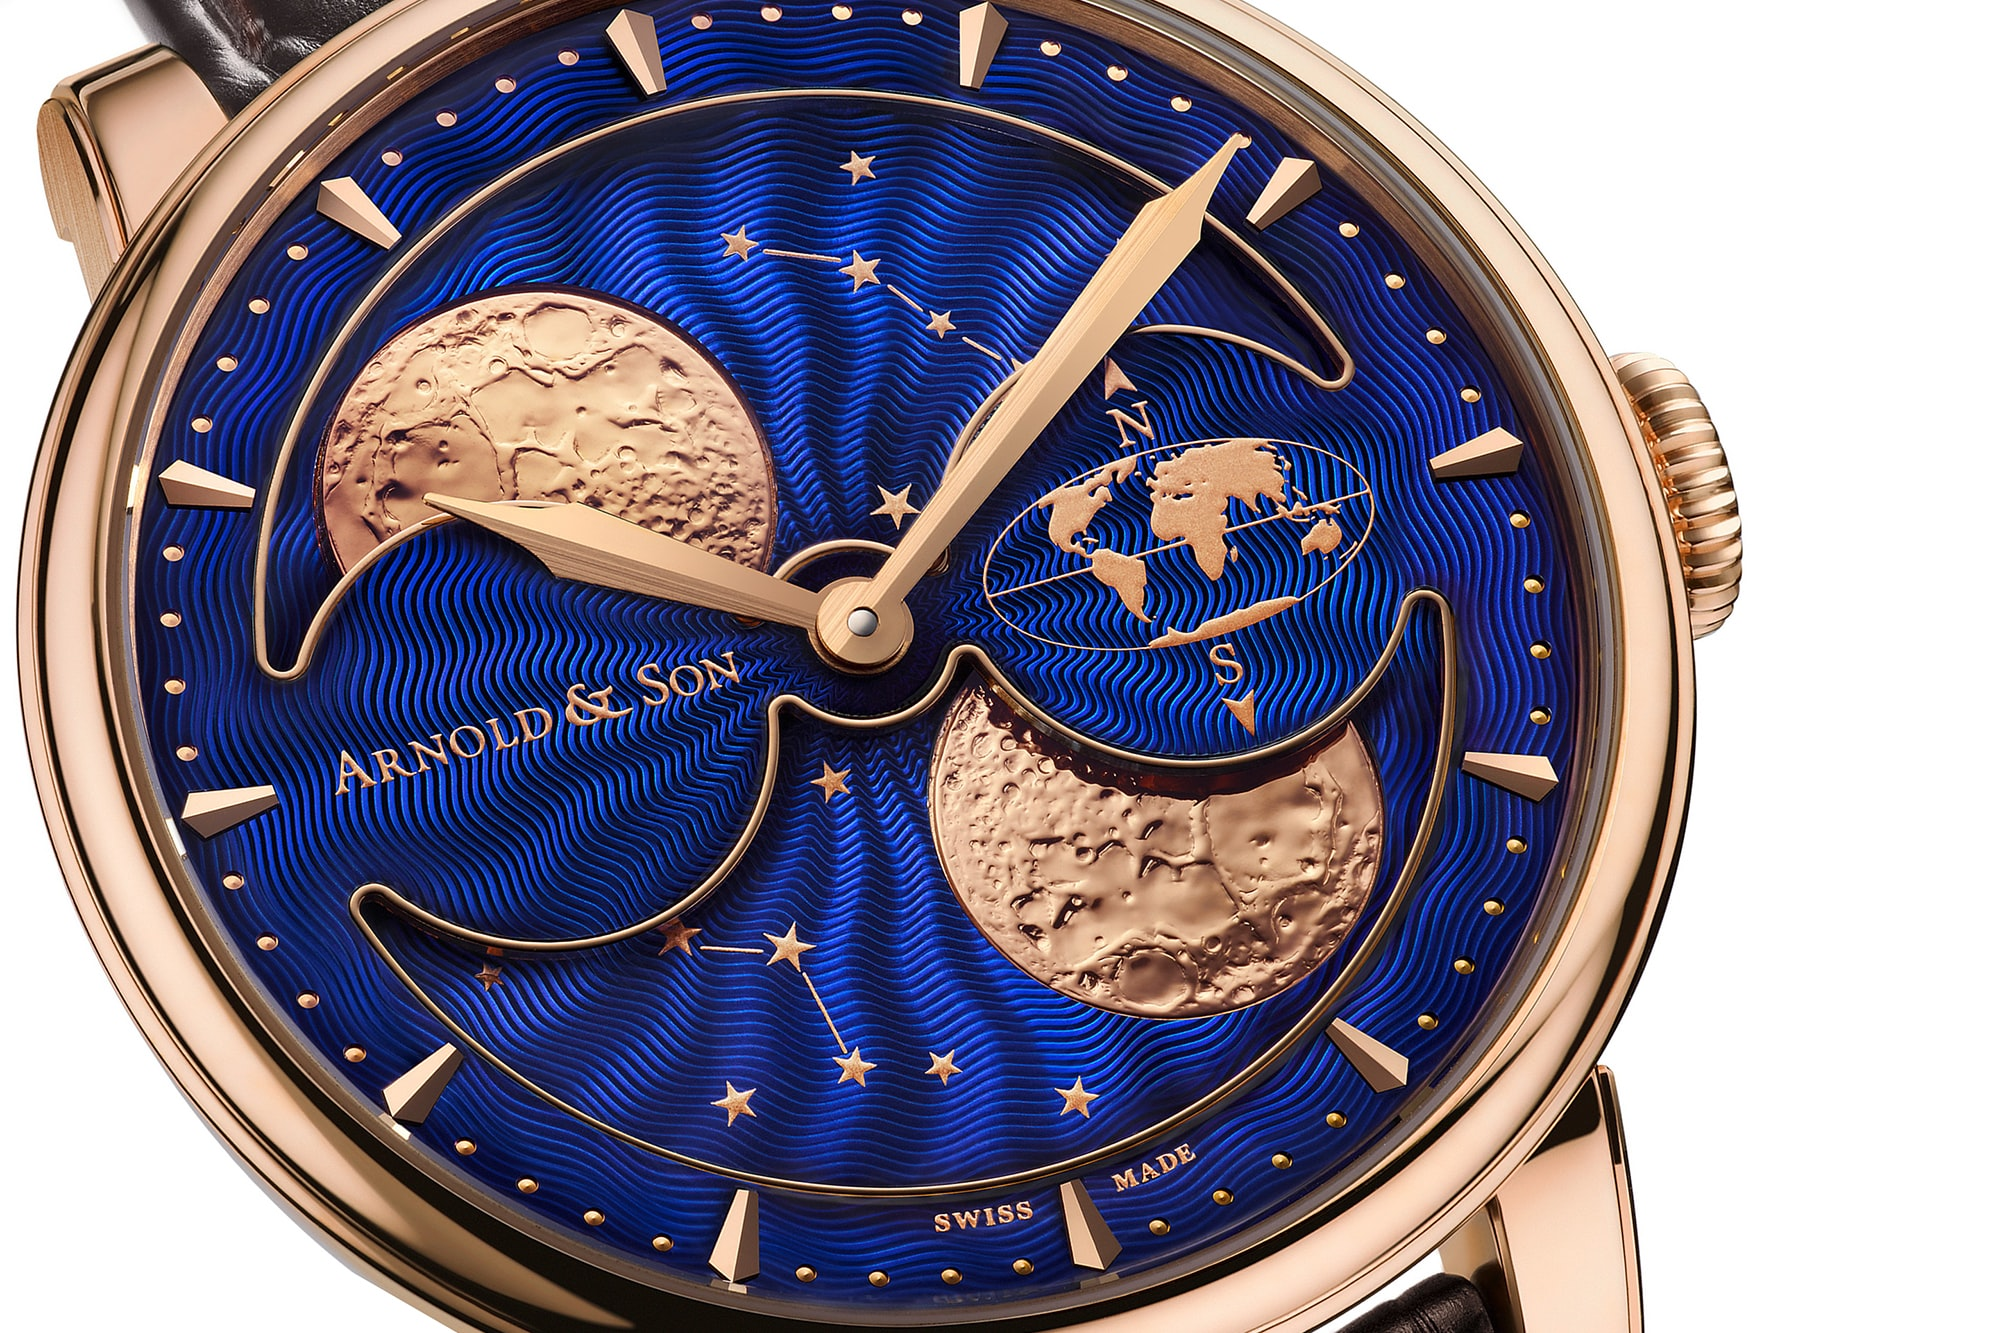 The Arnold & Son HM Double Hemisphere Perpetual Moon dial closeup Introducing: The Arnold & Son HM Double Hemisphere Perpetual Moon, With A Very Large High Precision Moon Phase Display Introducing: The Arnold & Son HM Double Hemisphere Perpetual Moon, With A Very Large High Precision Moon Phase Display 33333